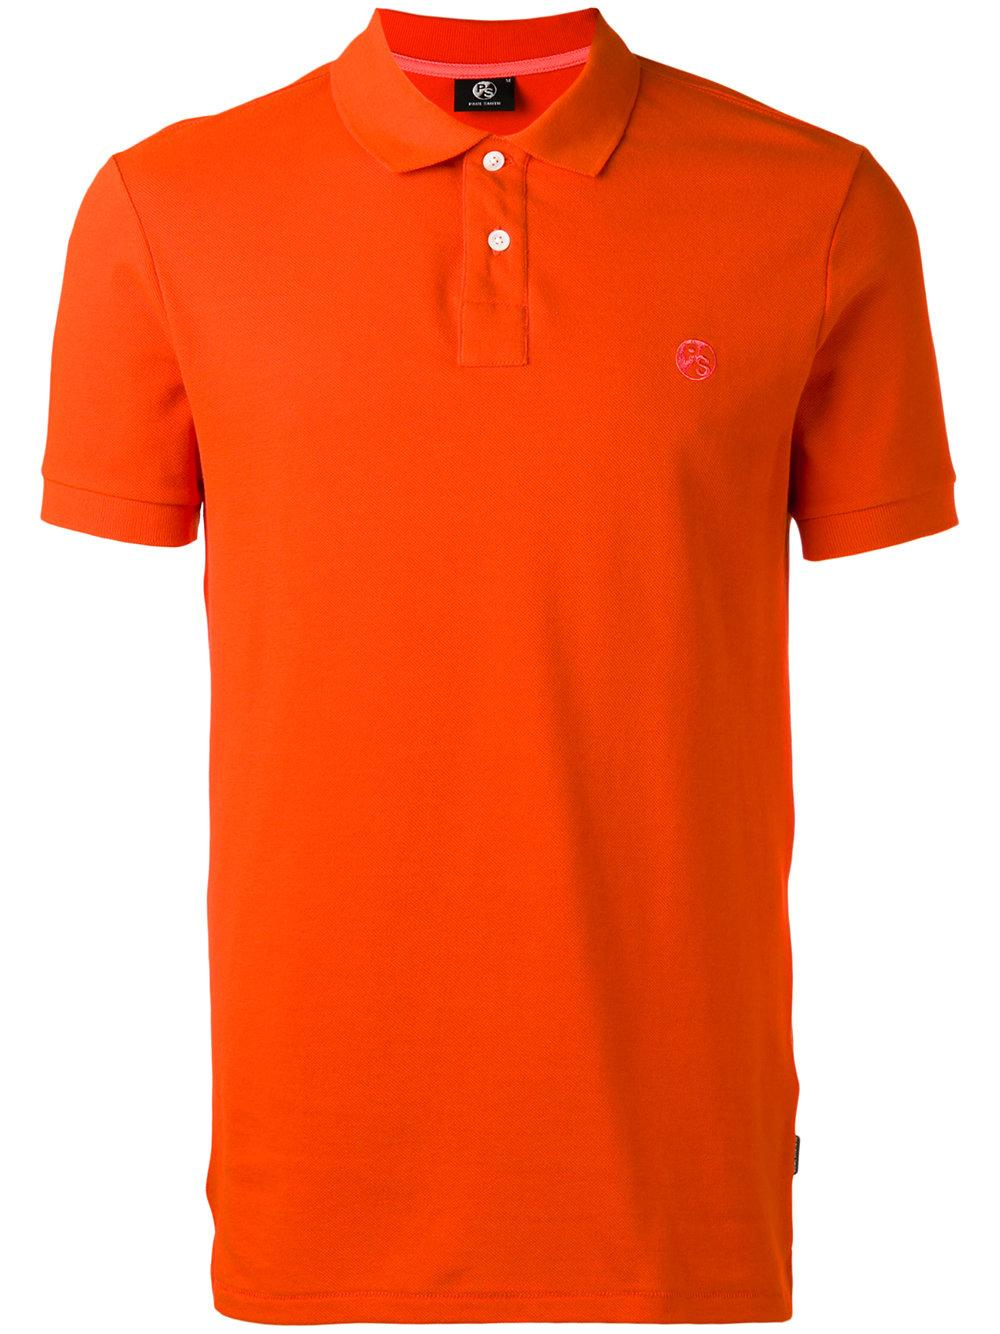 Lyst Ps By Paul Smith Classic Polo Shirt In Orange For Men